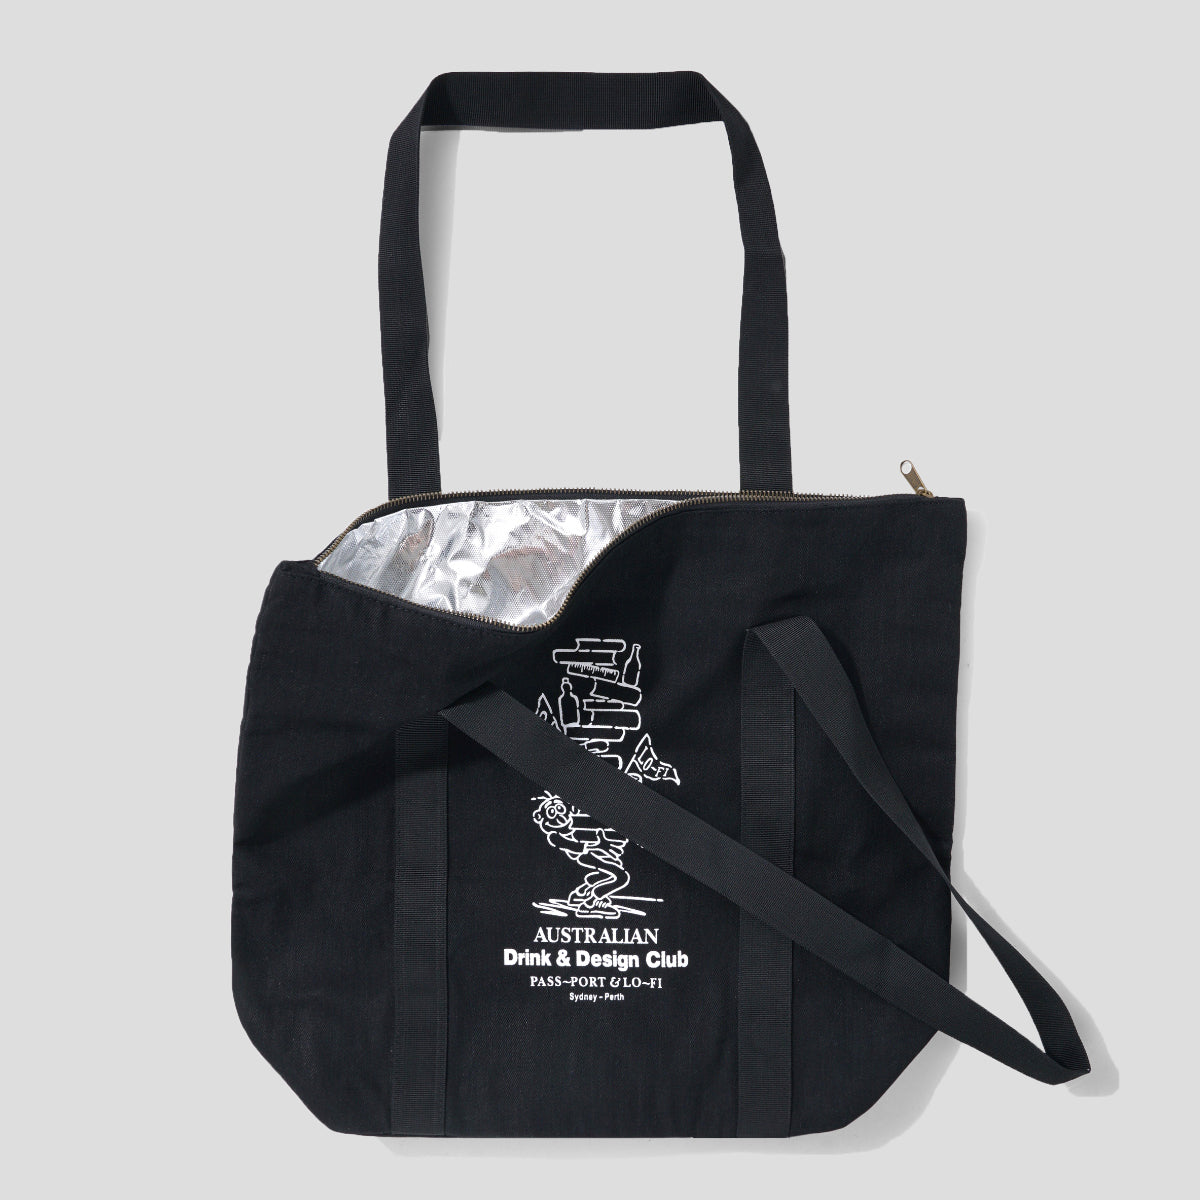 "LO-FI & PASS~PORT ""DRINK & DESIGN CLUB"" INSULATED TOTE BAG"